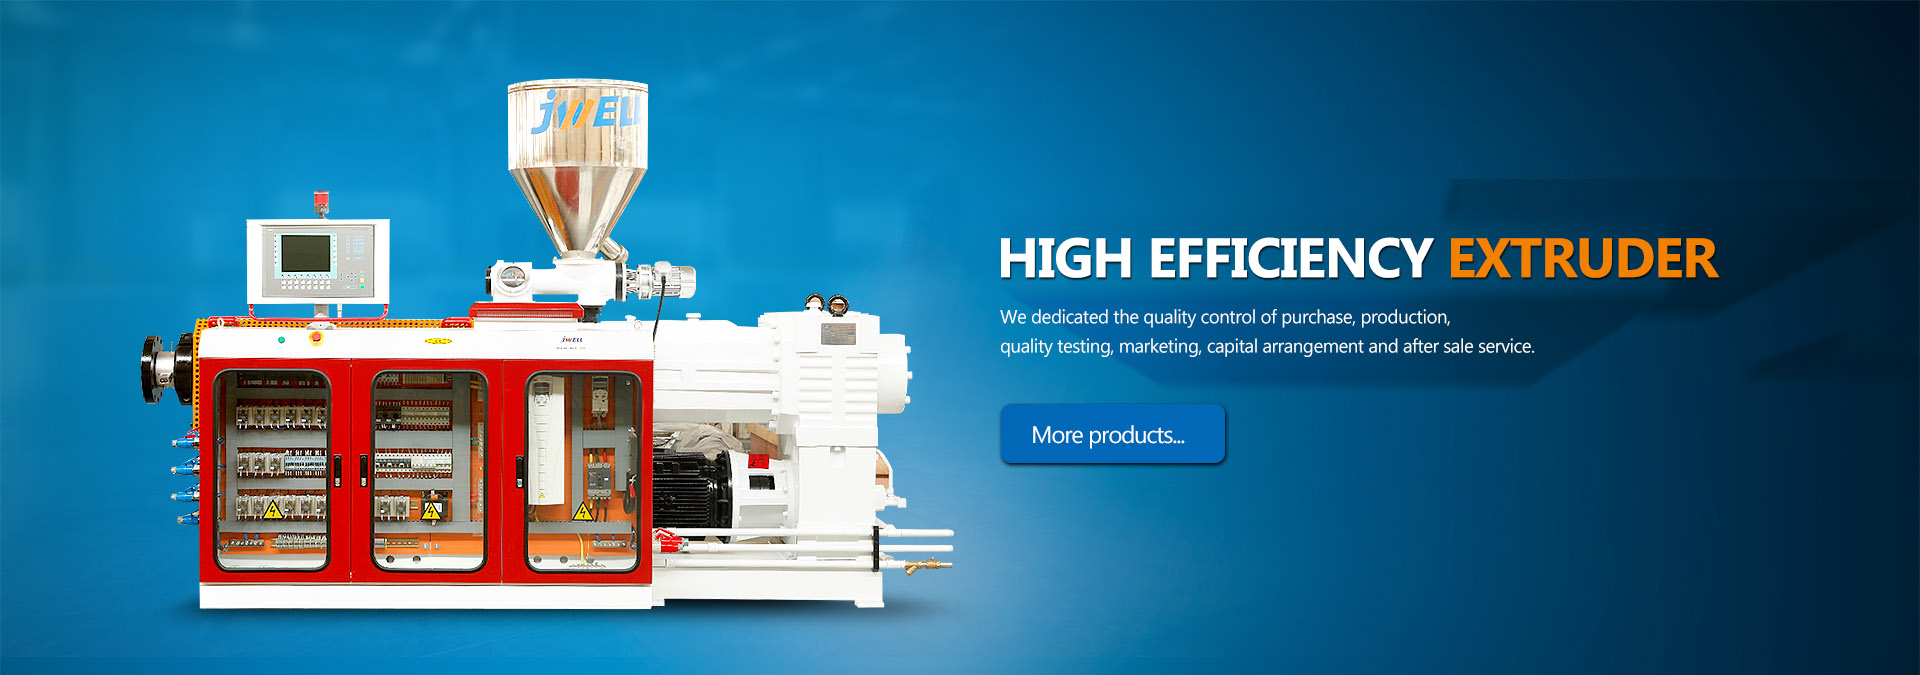 High efficiency extruder